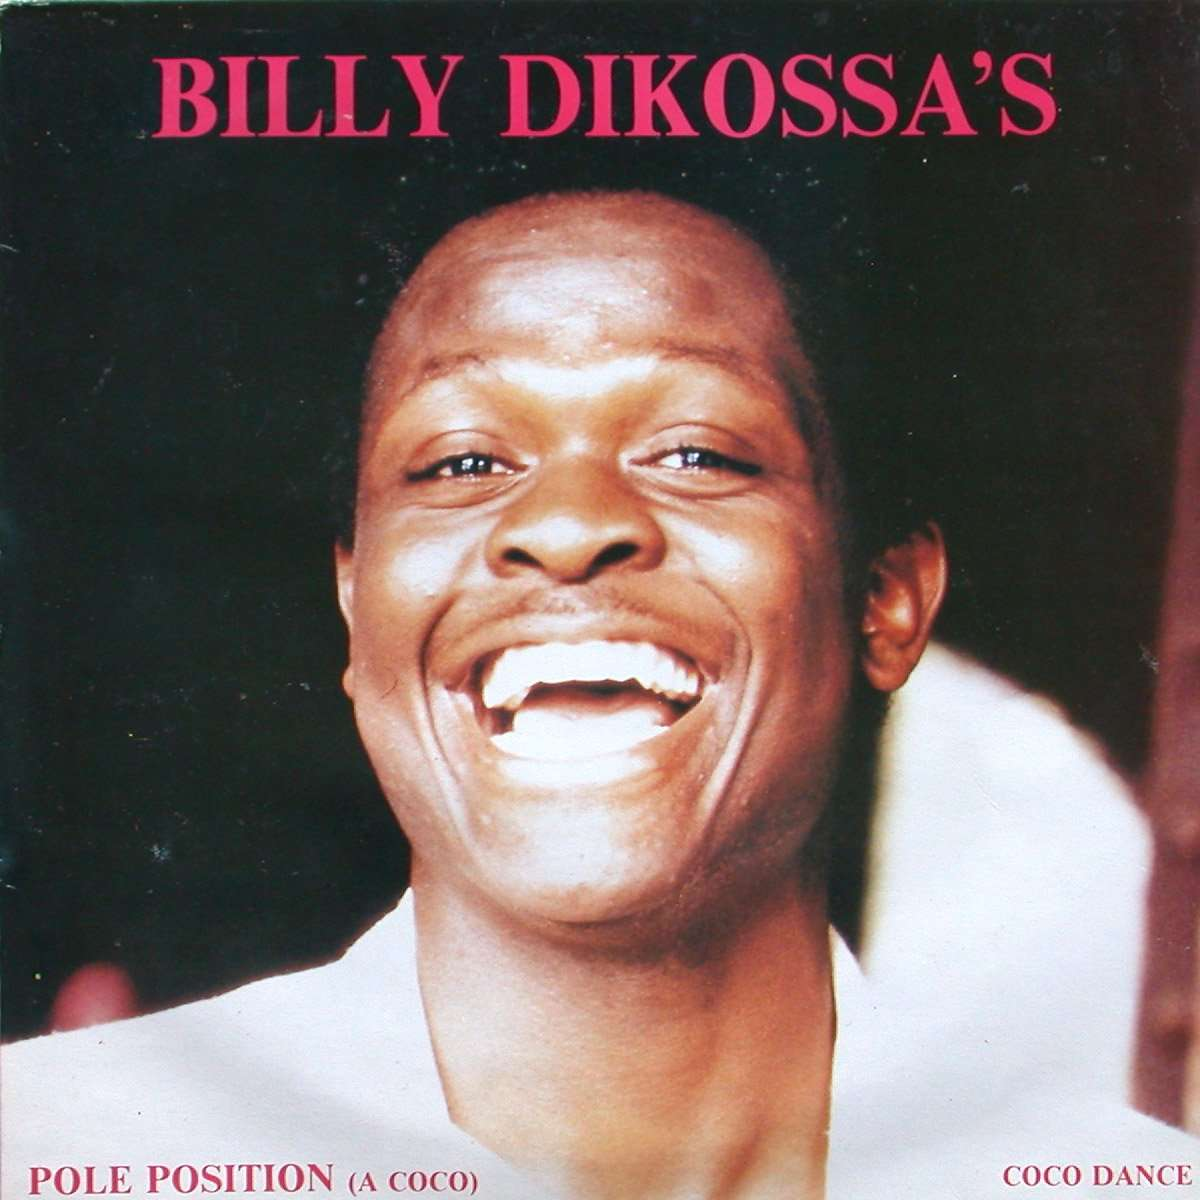 Billy Dikossa S Pole Position A Coco Lp For Sale On